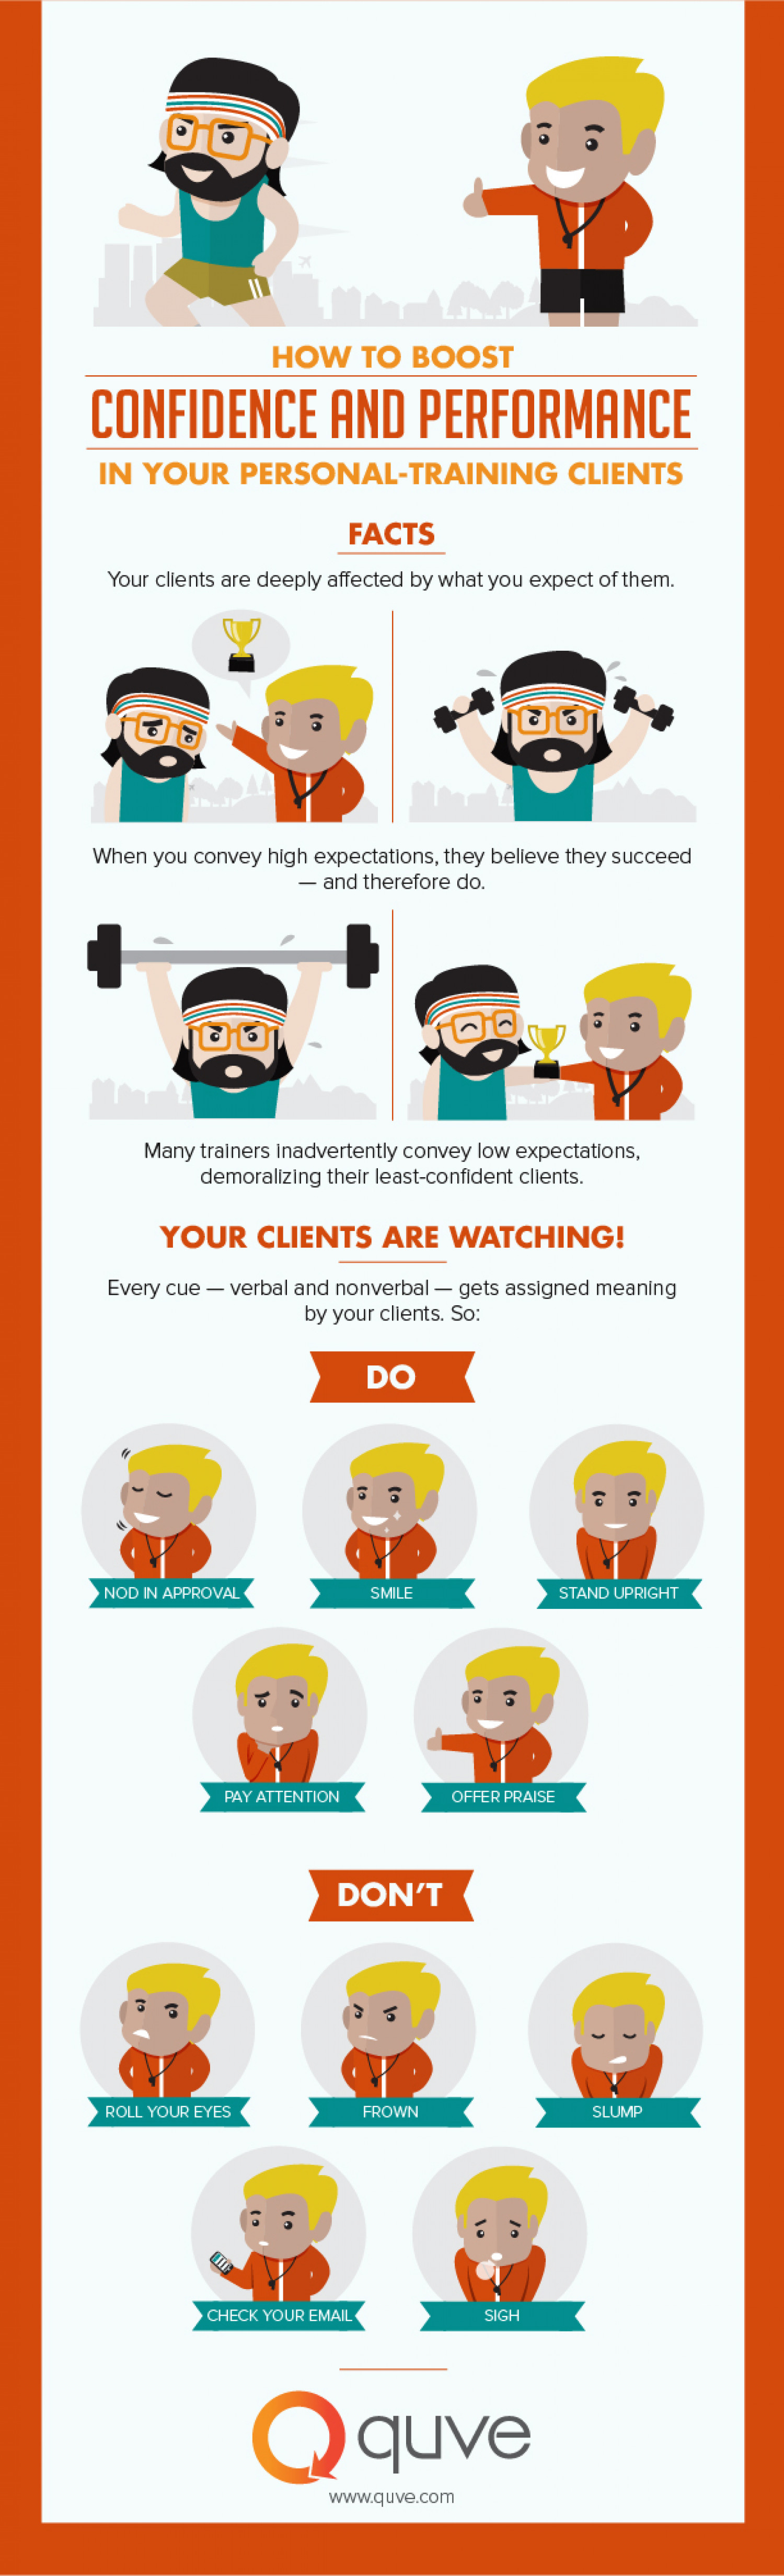 How to Boost Confidence in Your Personal Training Clients Infographic